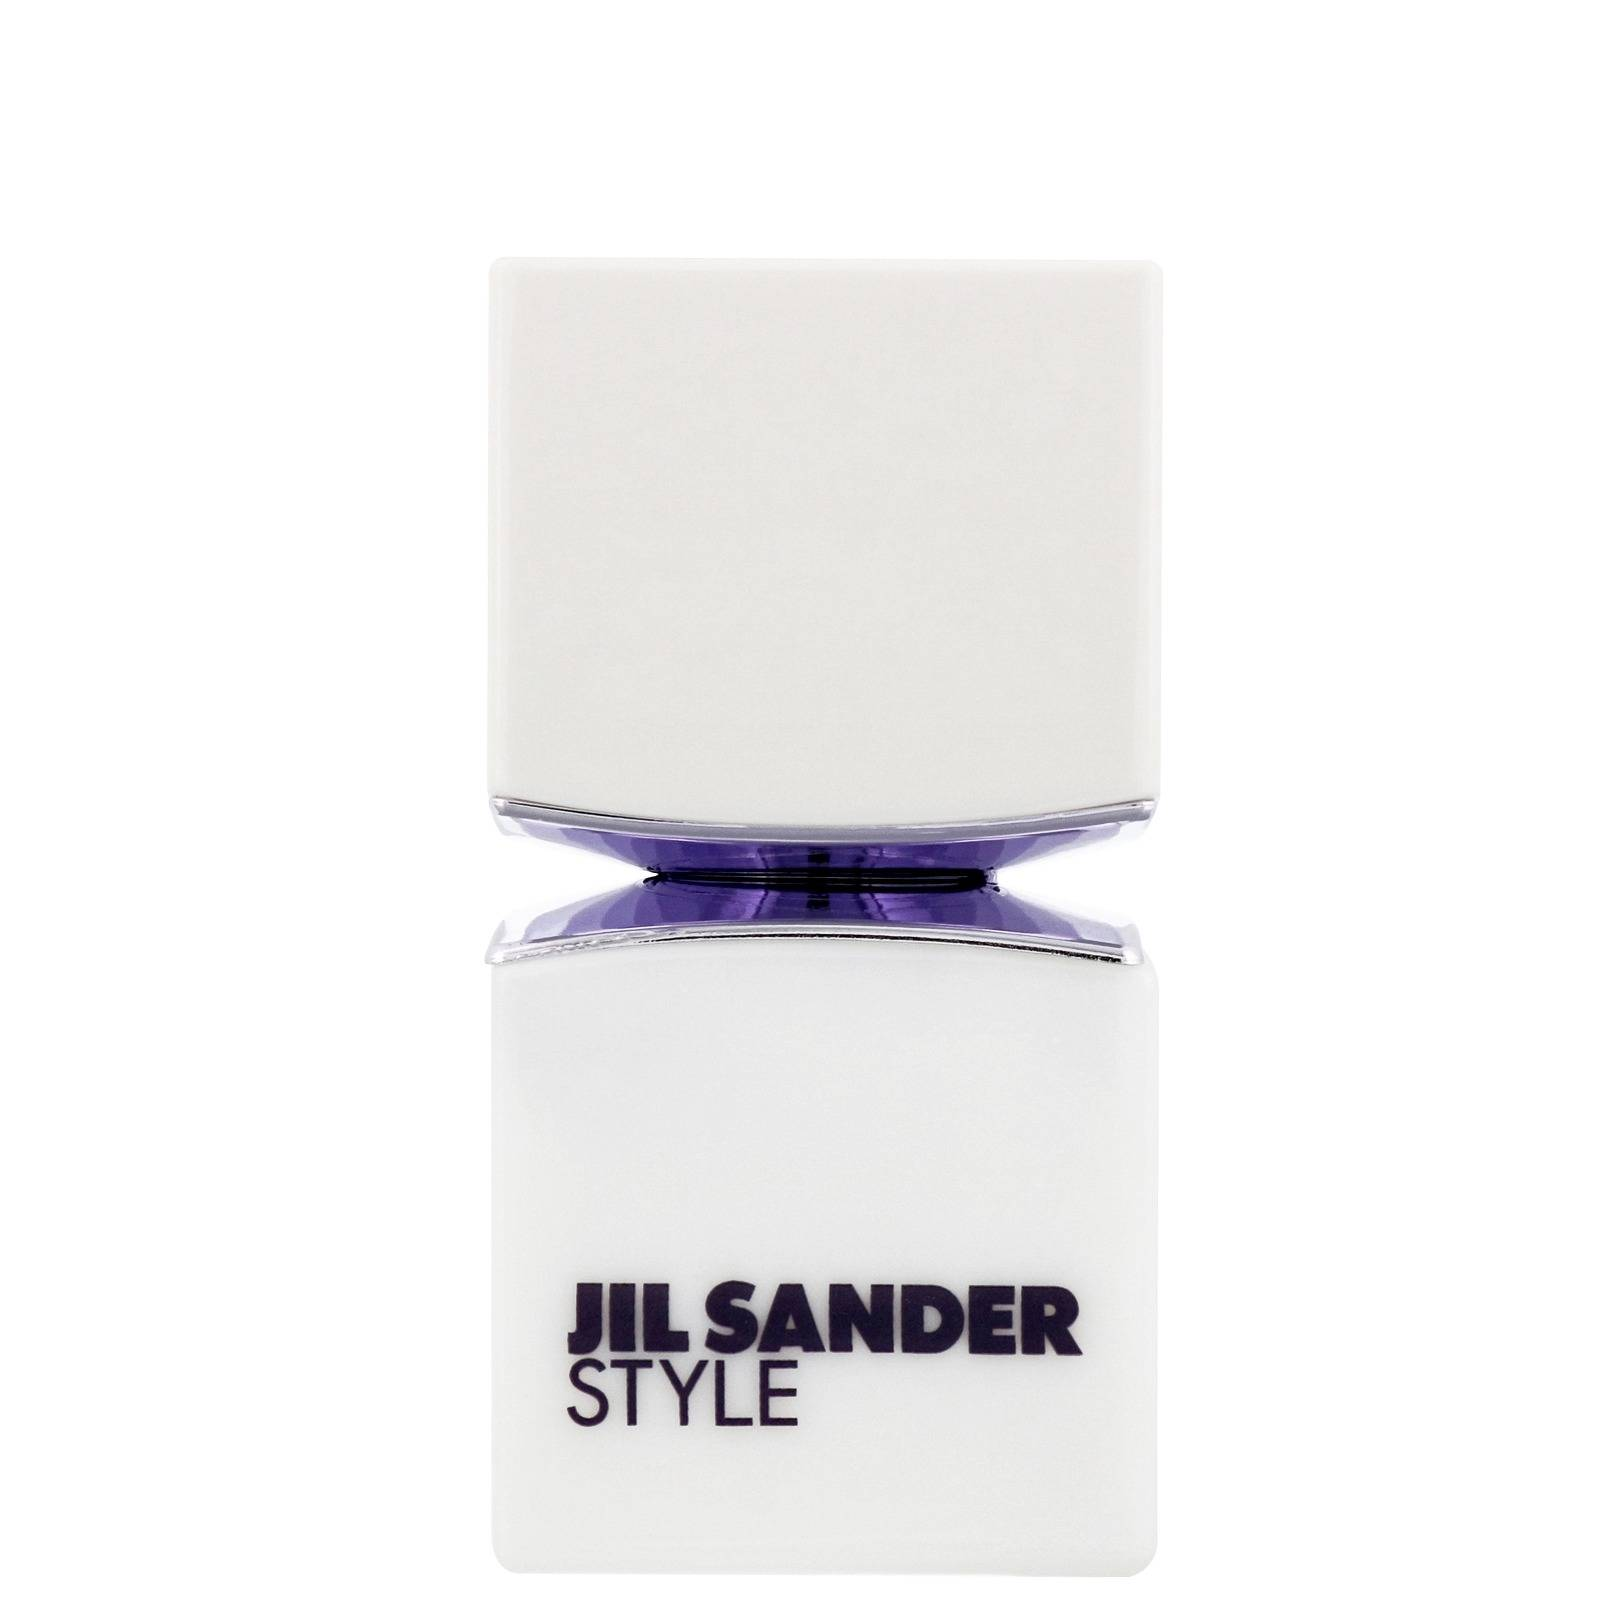 Jil Sander Style 30ml Eau de Parfum Spray